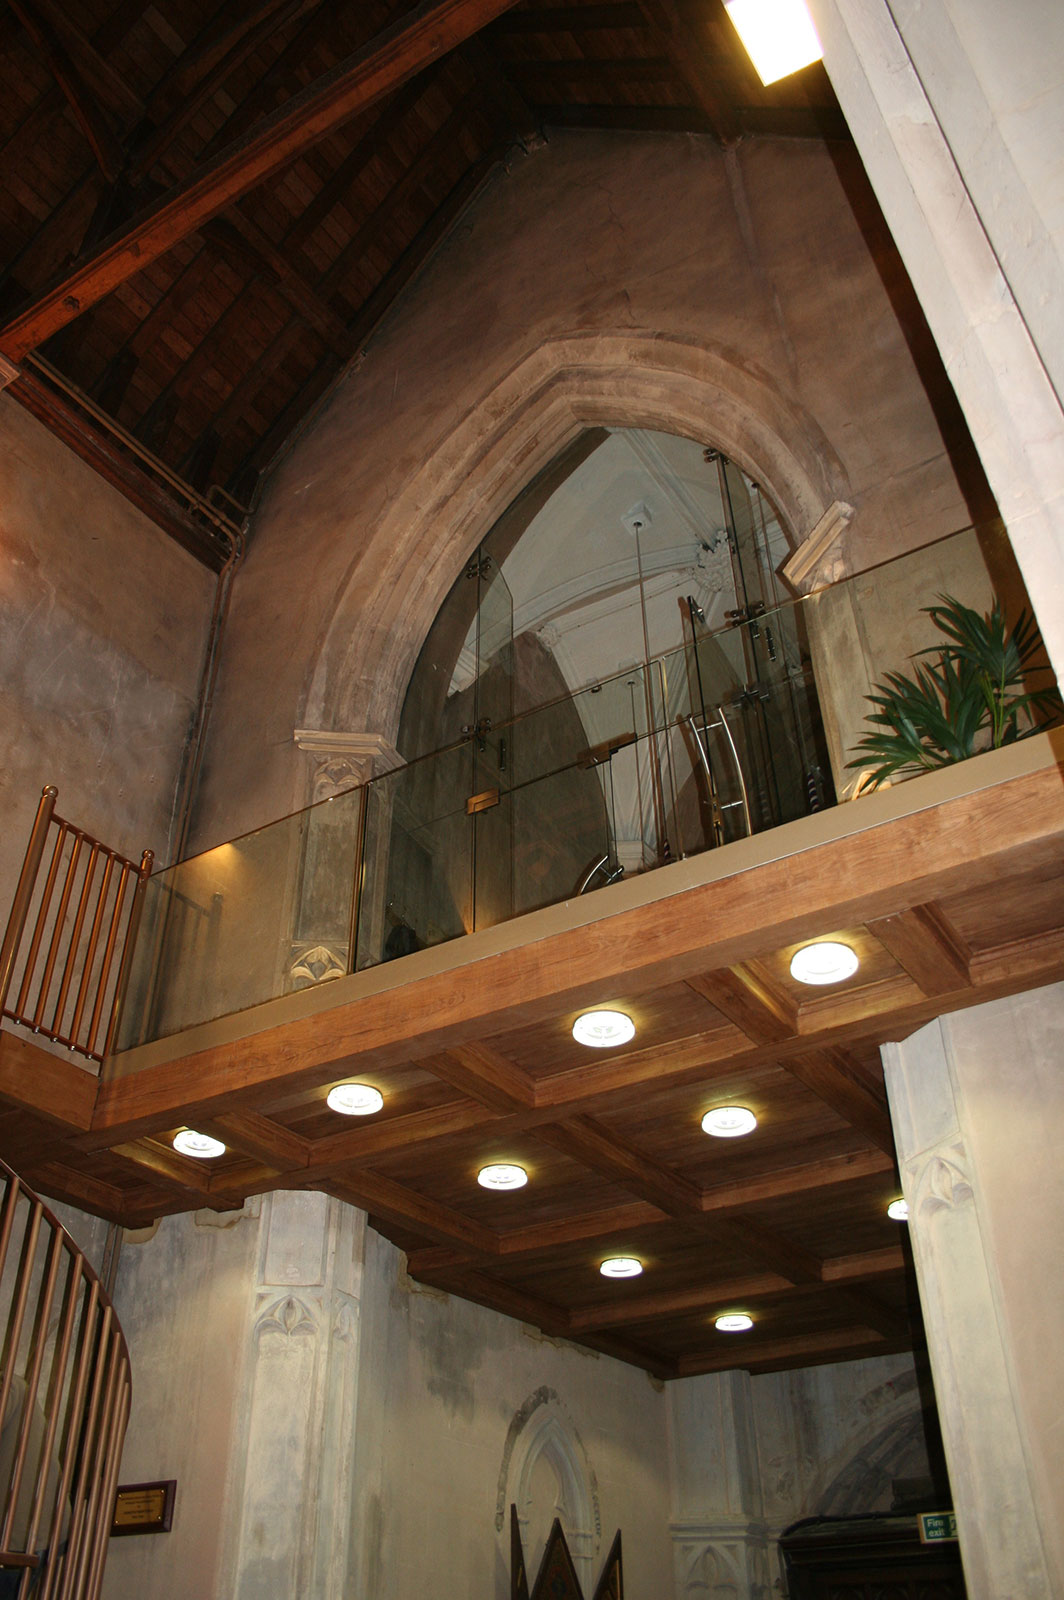 Architectural Glass Screens and Balcony, St. Peter's Church